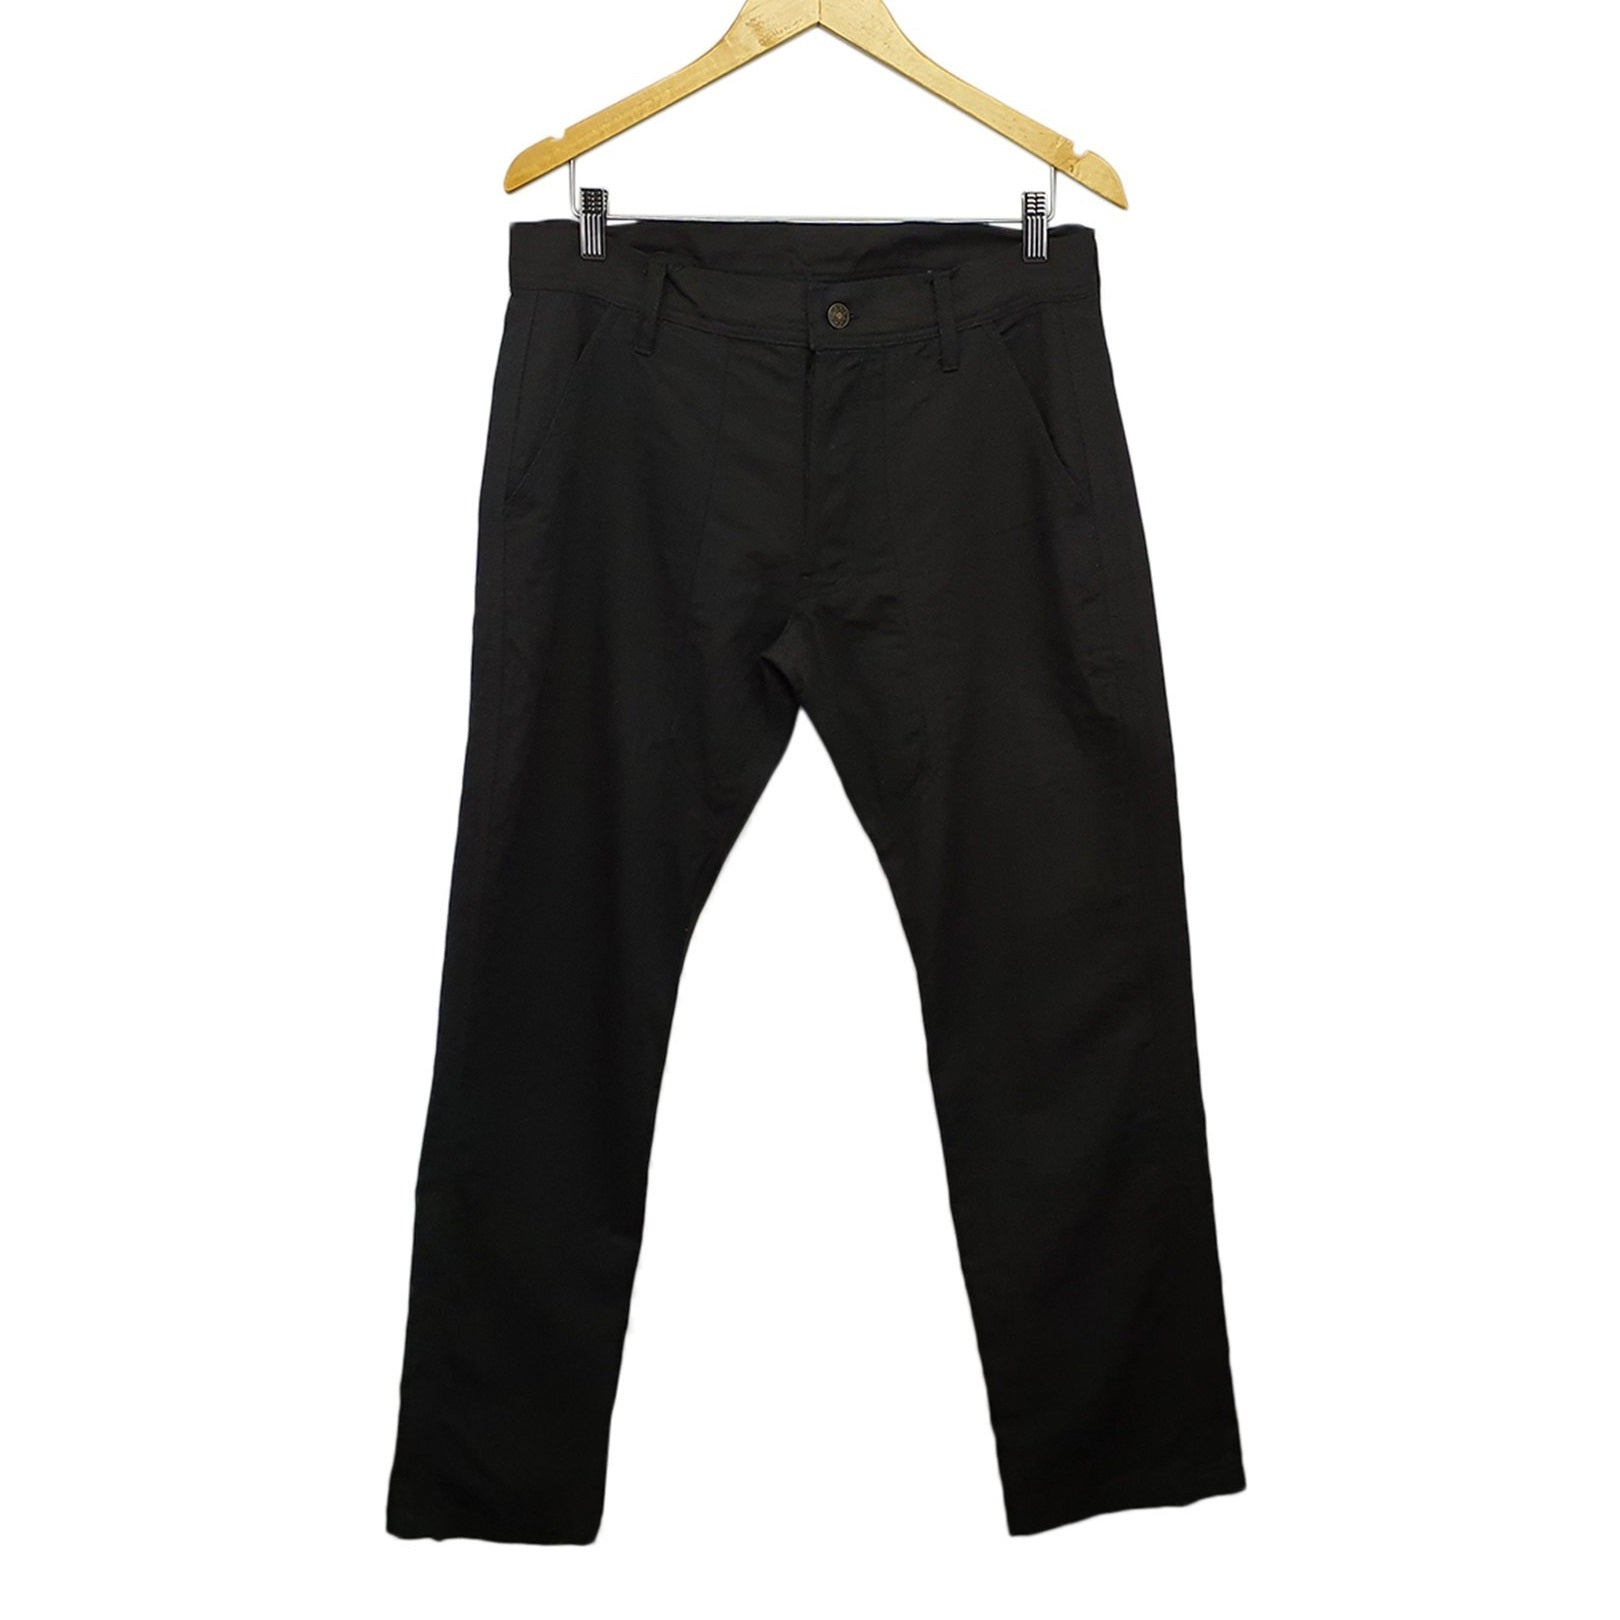 Black Work Pants - Concept Racer